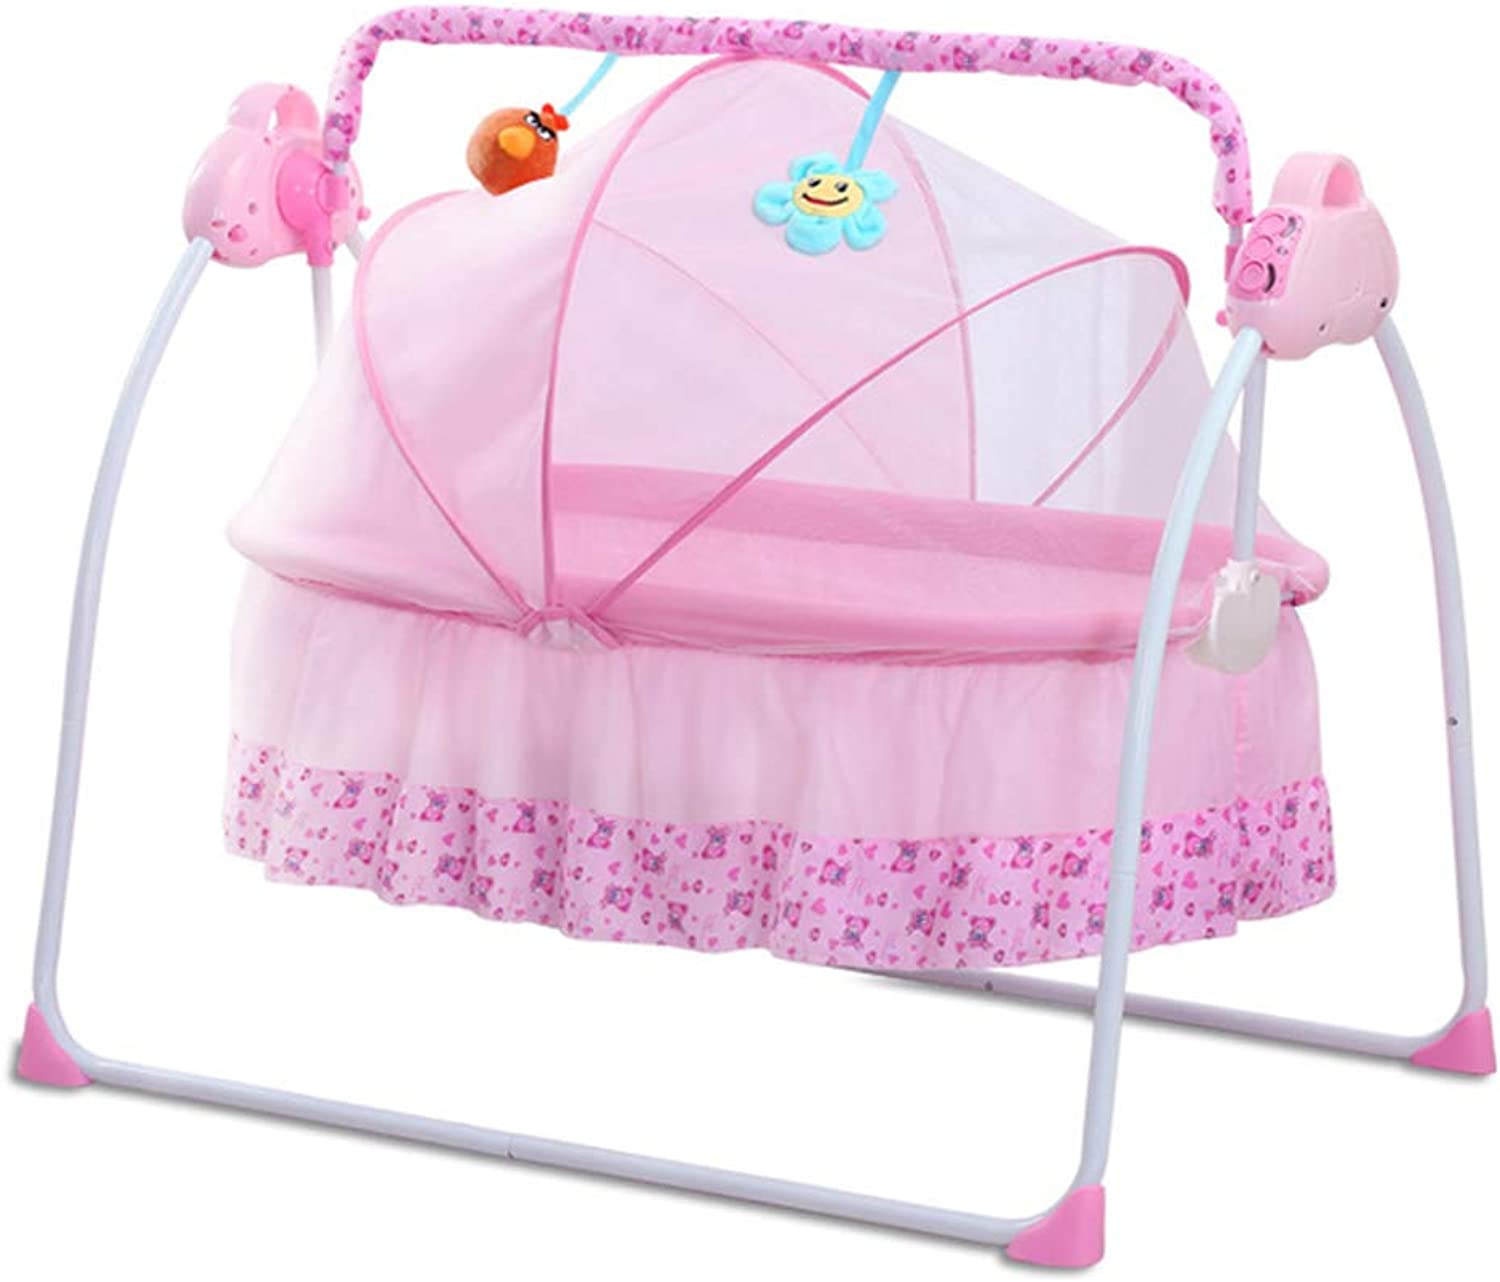 Baby Electric Cradle Bed, Smart Timed Baby Cradle 3-gear Adjustment-Portable Music Cradle Bed-Toddler Coax Sleeping Artifact-Care Desk Baby Mosquito Net Lying Chair